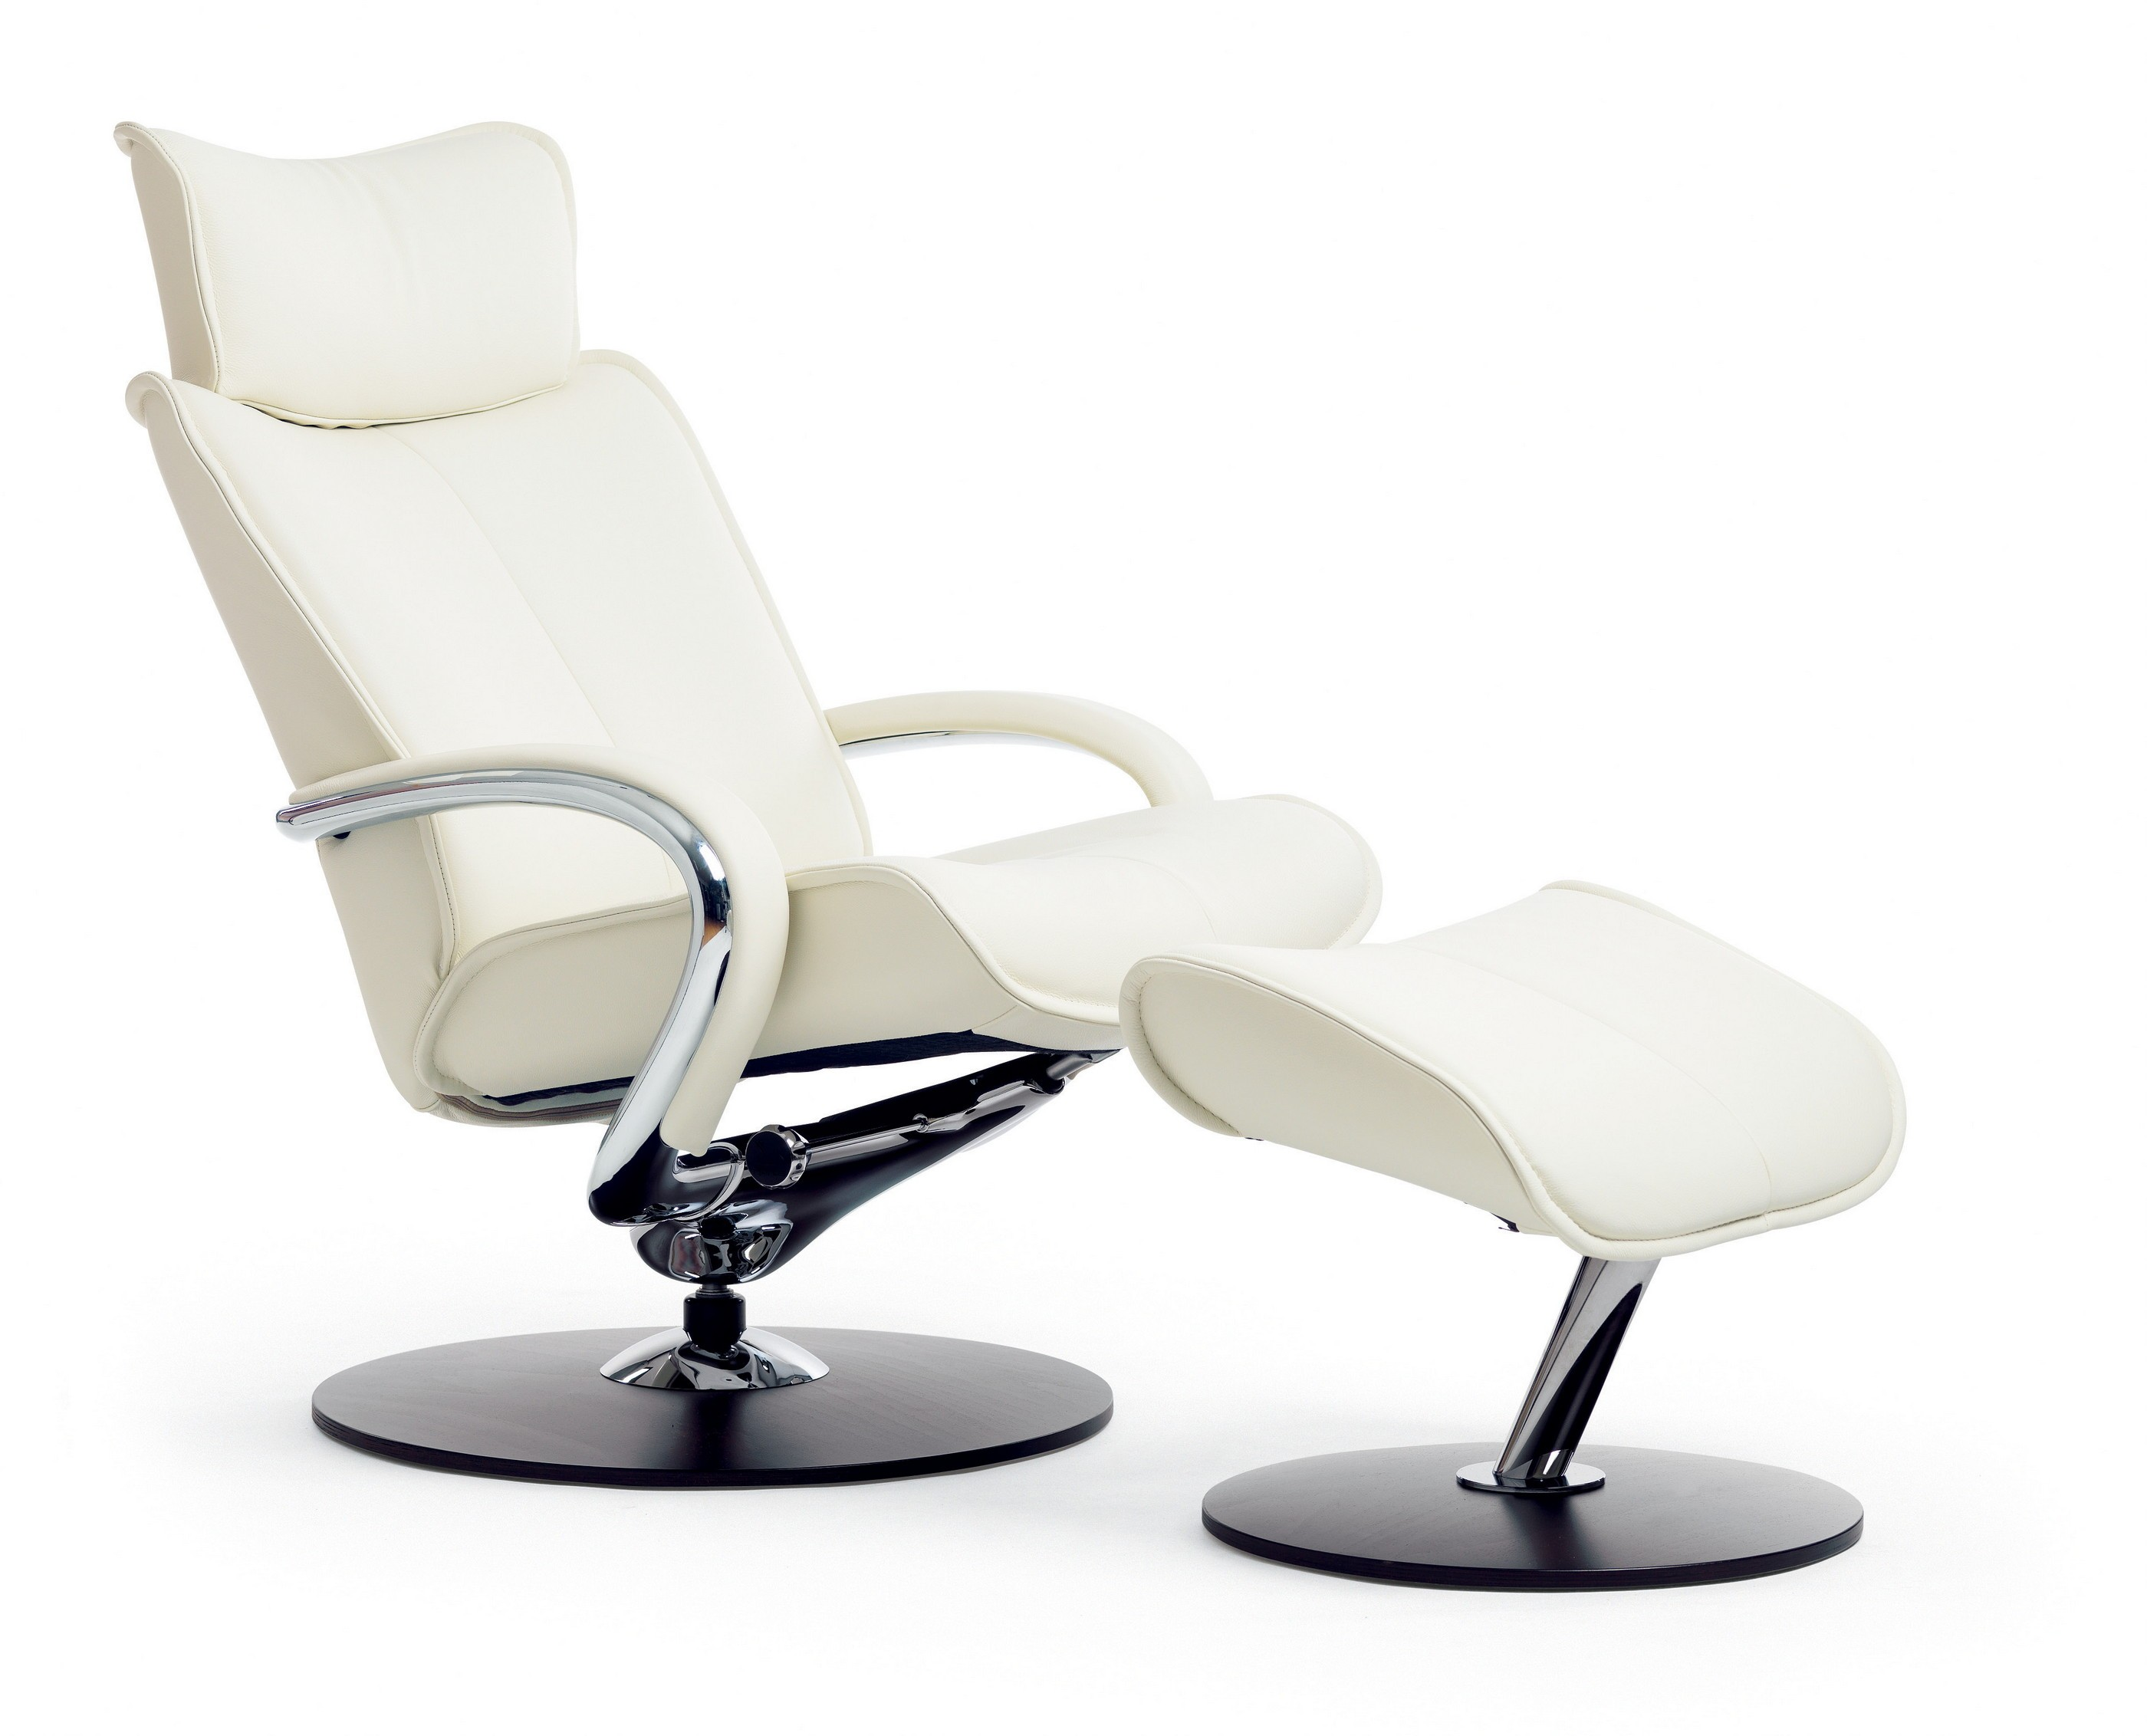 ergonomic chair norway best desk chairs fjords ona recliner with ottoman